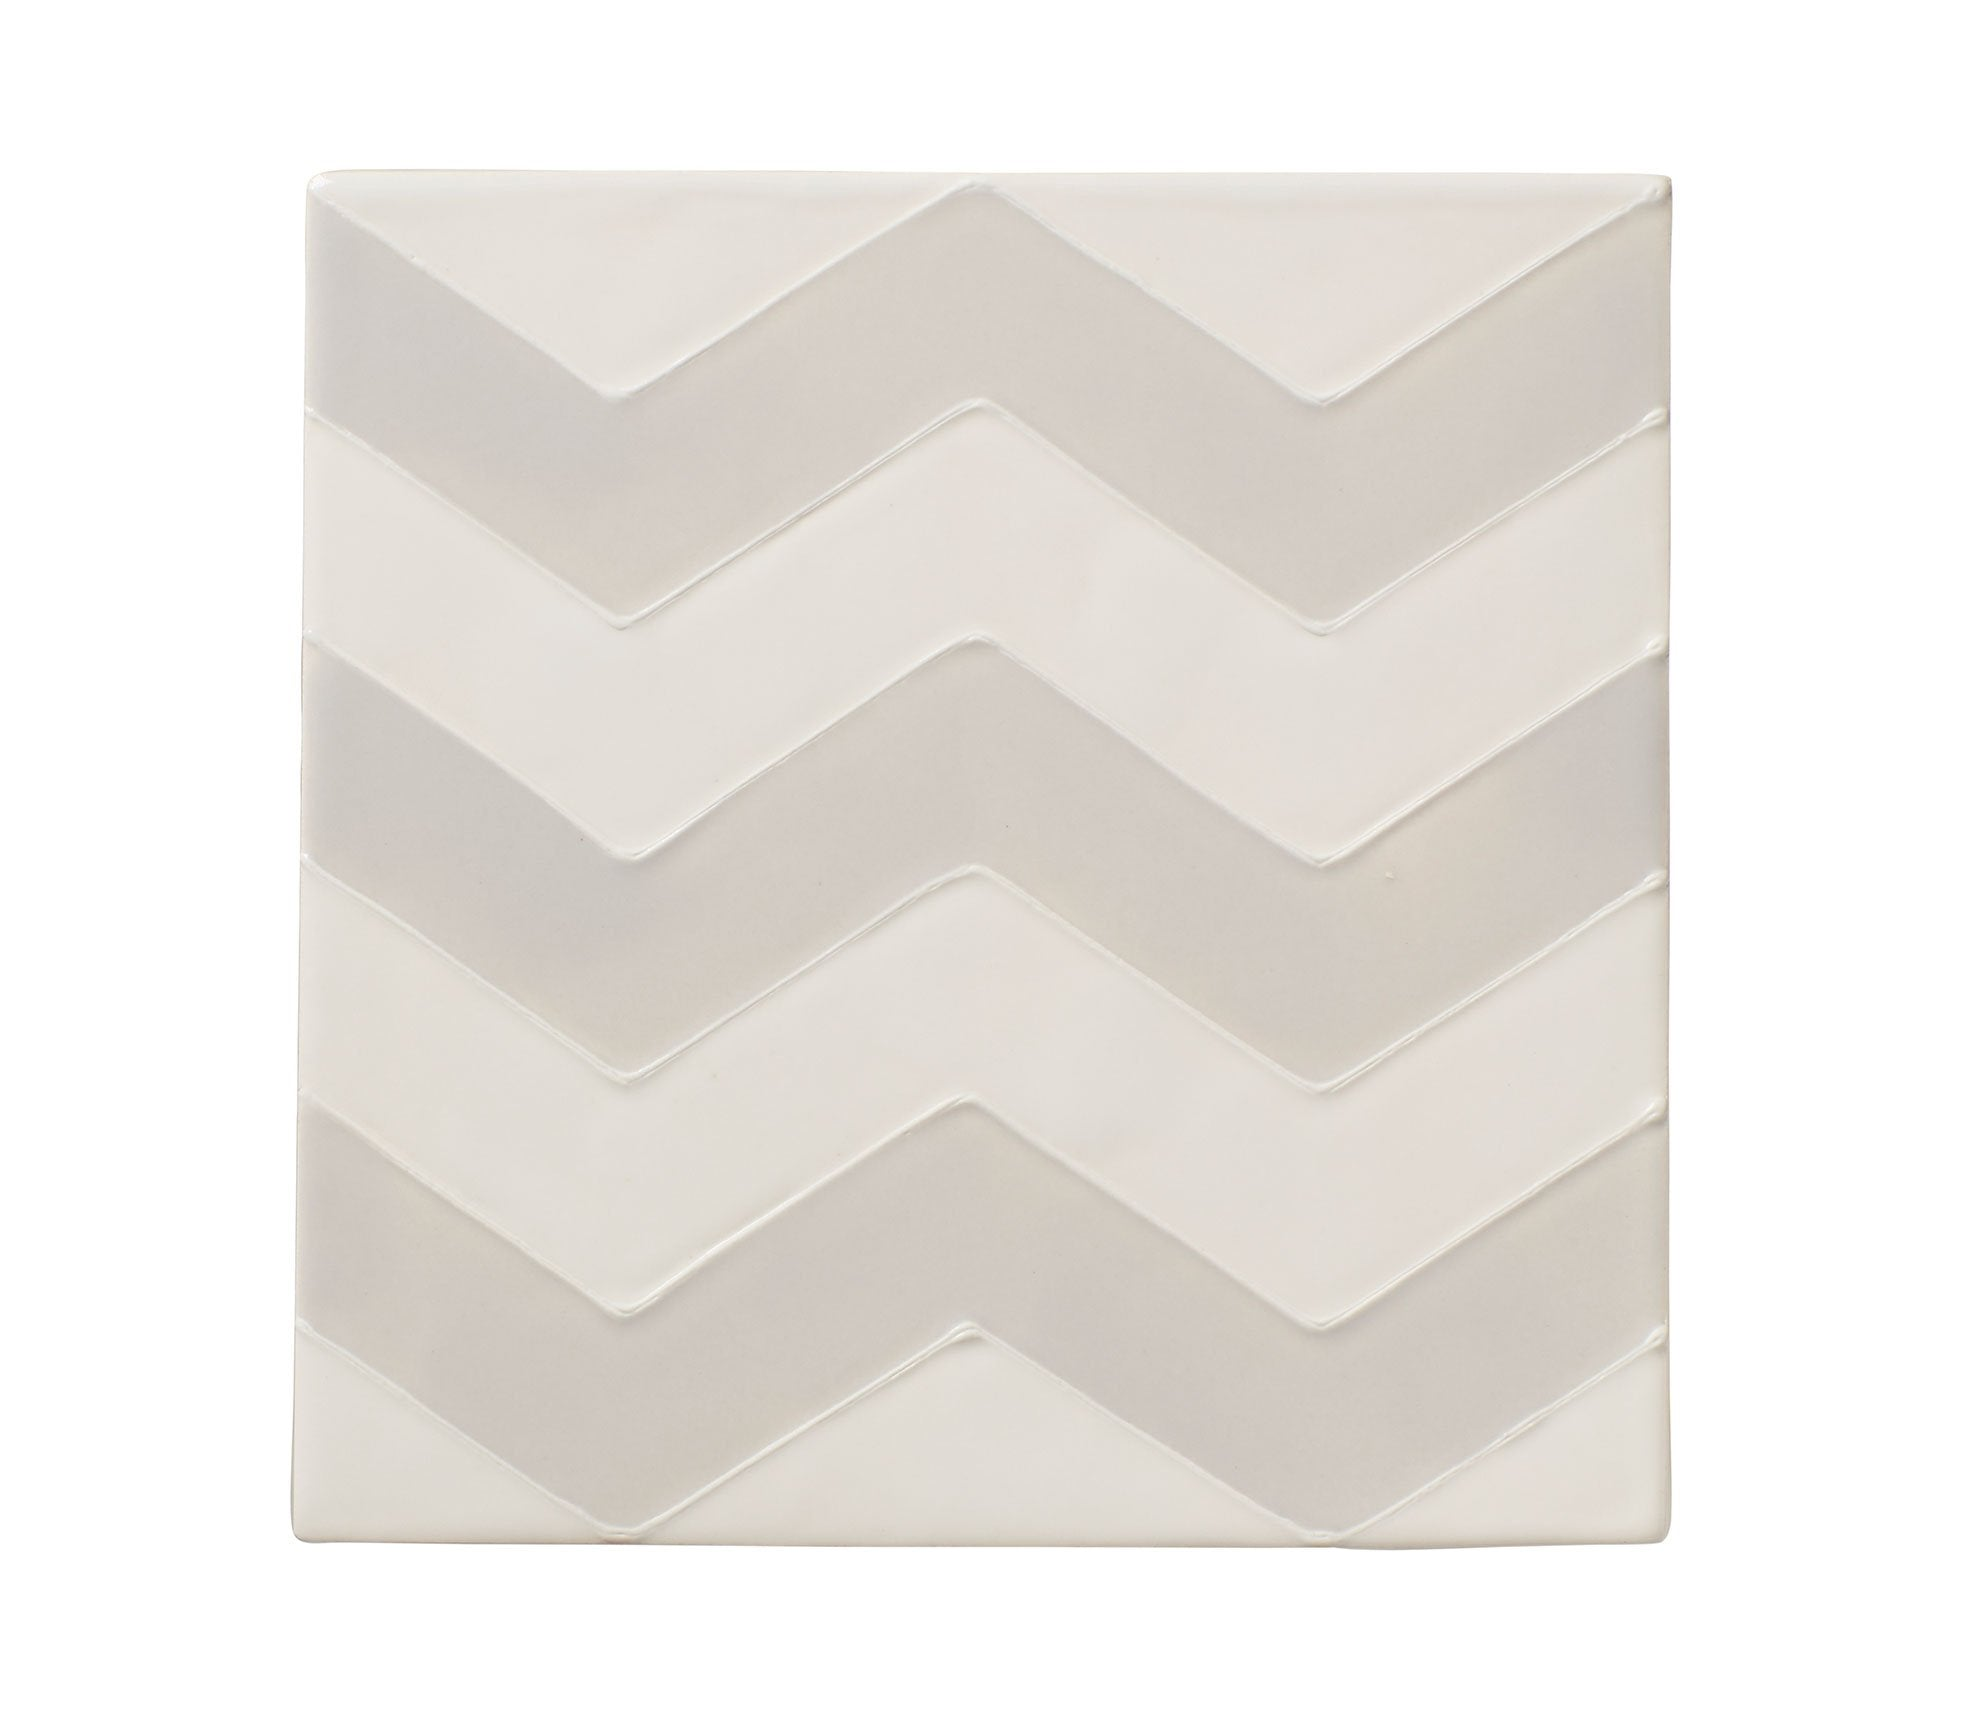 Hanley Tube Lined Decorative Tiles Product Image 12